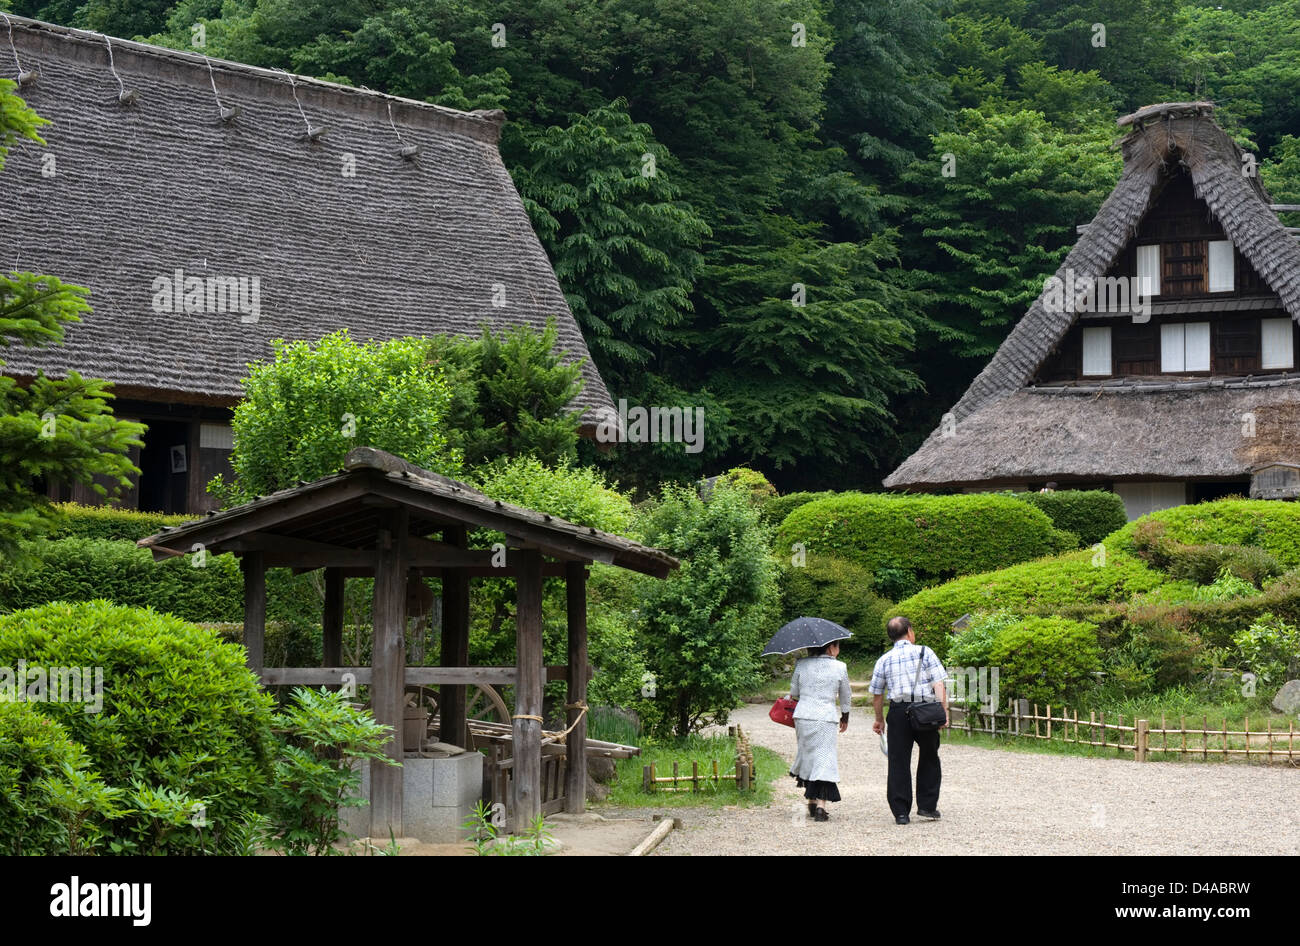 Visitors walking past historic kayabuki thatched-roof village farm houses at the Nihon Minkaen open-air folk museum - Stock Image